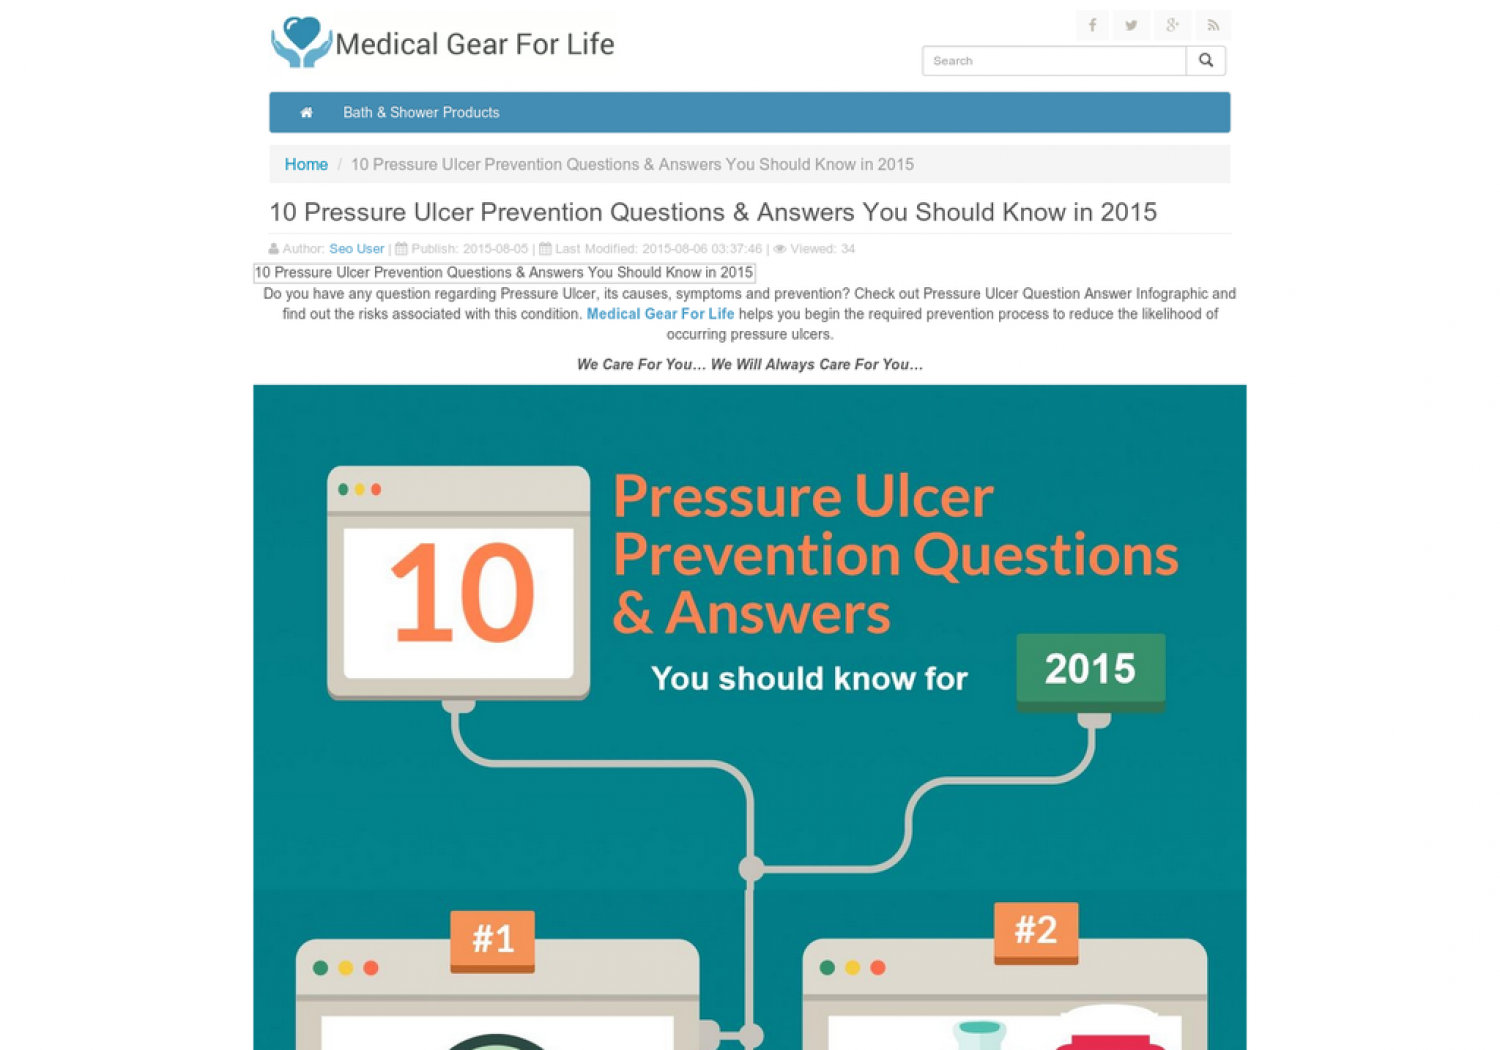 Pressure ulcers ebook pressure ulcers array 10 pressure ulcer prevention questions u0026 answers in 2015 visual ly rh visual ly fandeluxe Choice Image